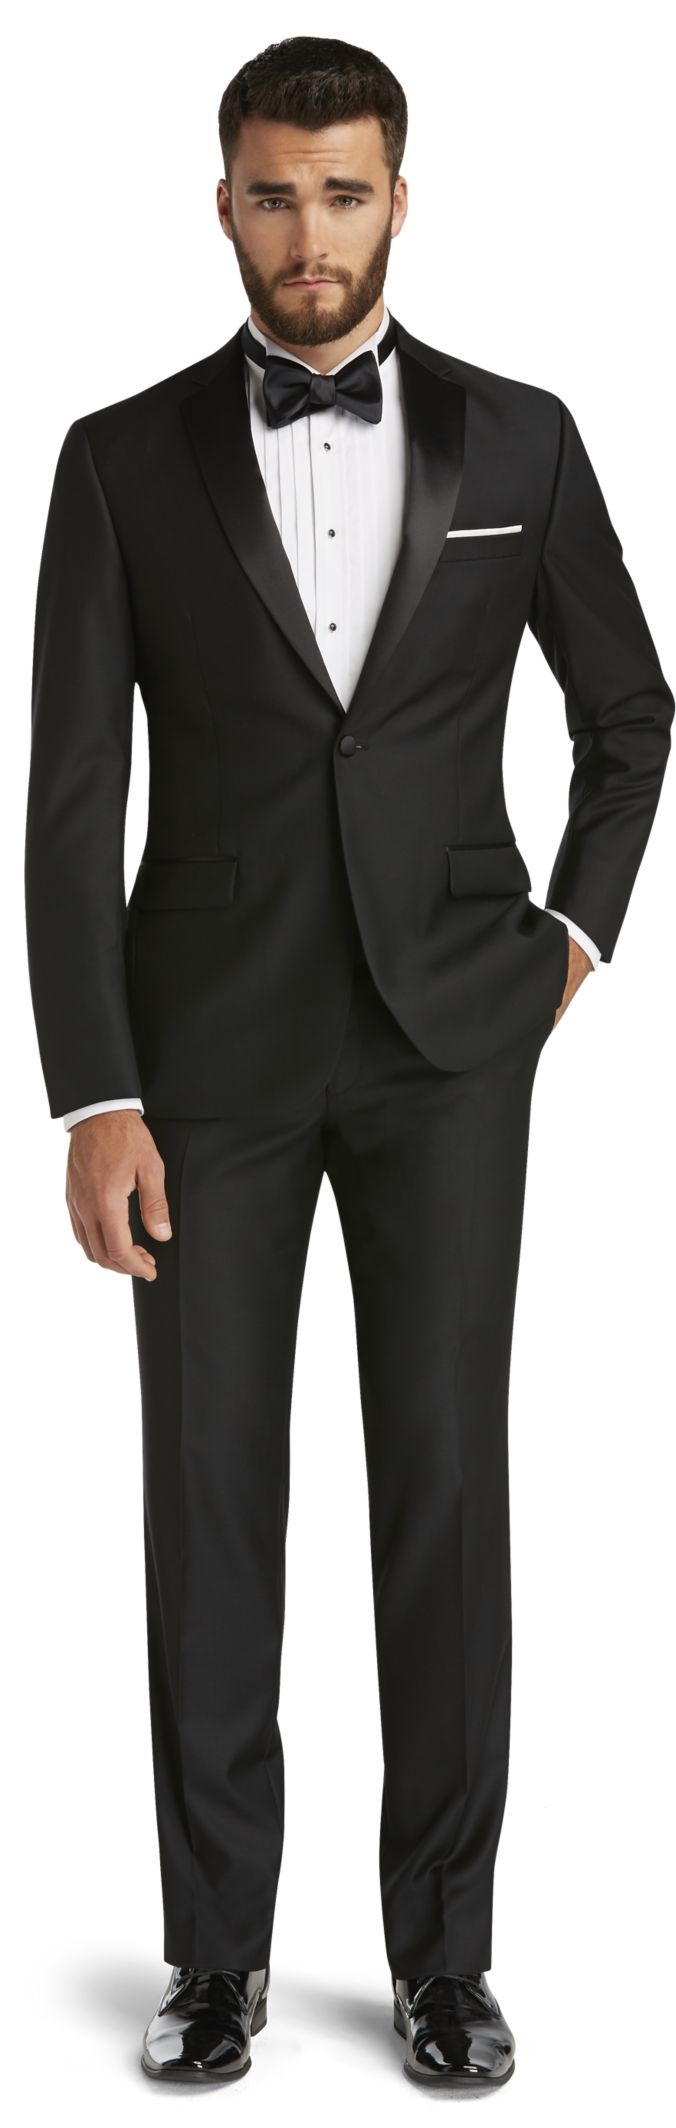 Signature Collection Tailored Fit Tuxedo